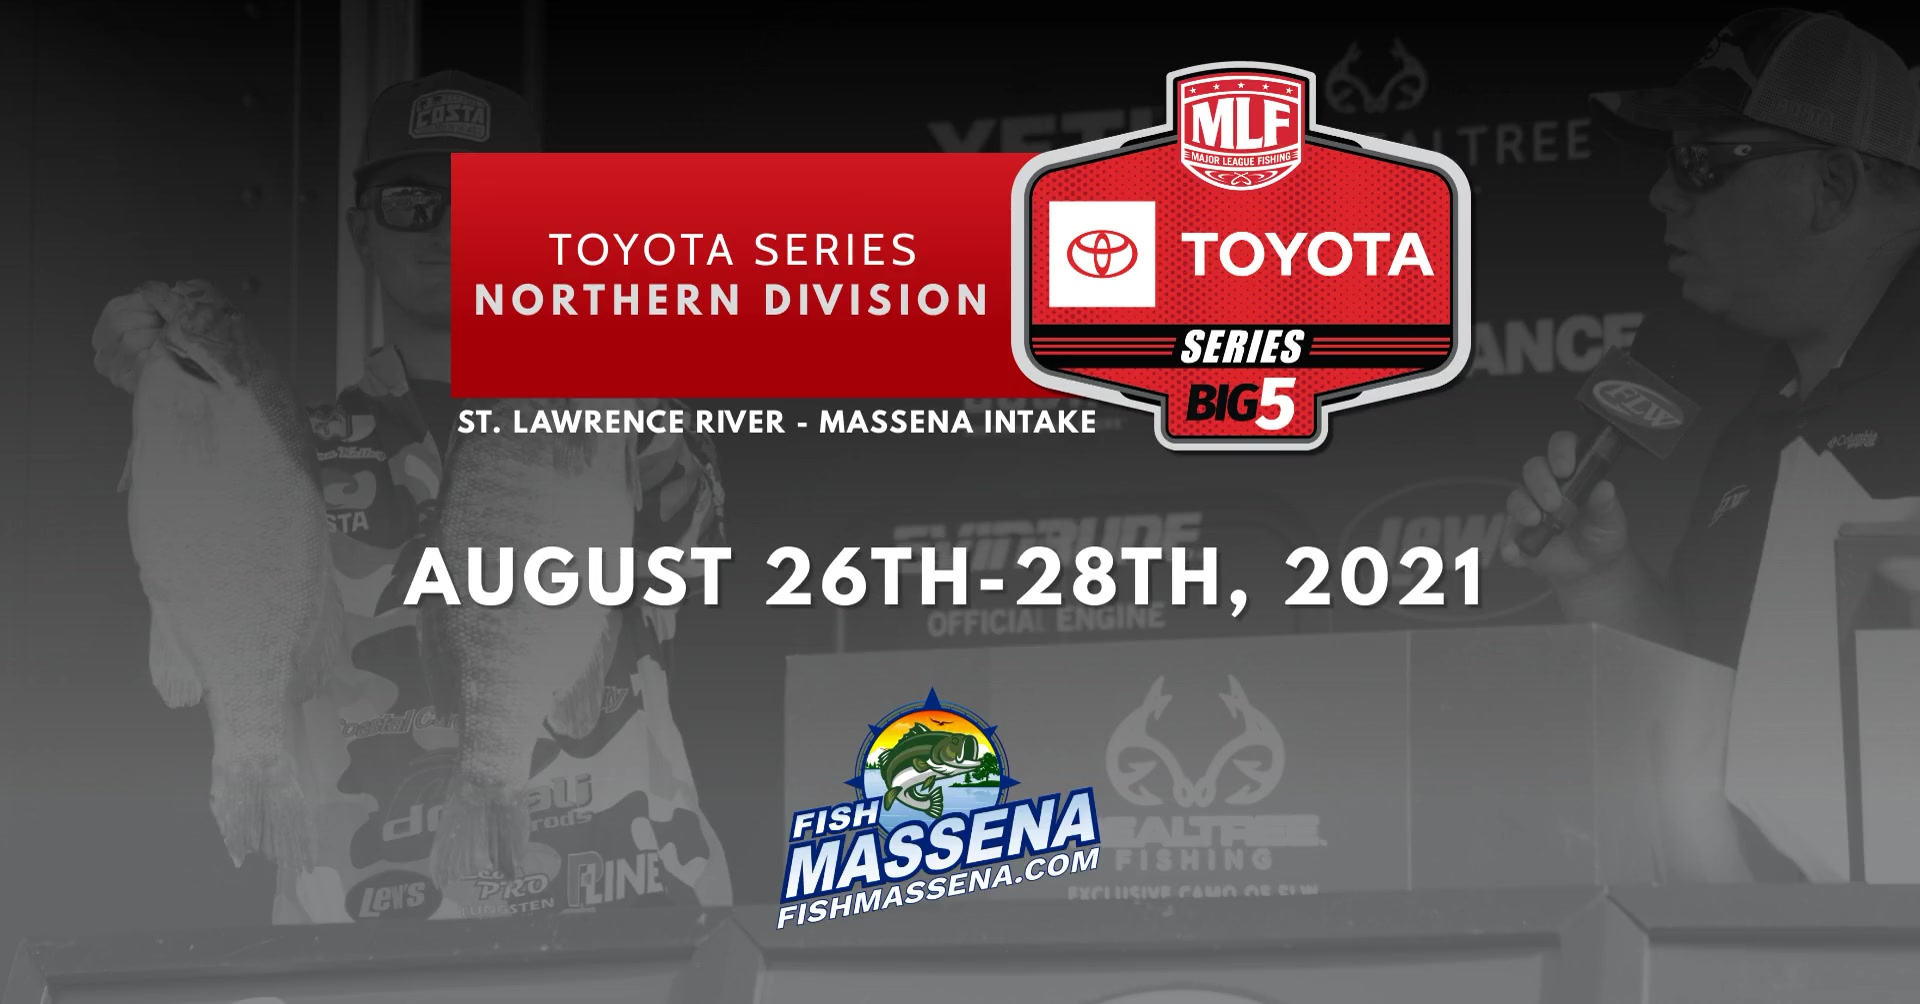 2021 MLF Toyota Series - Northern Division